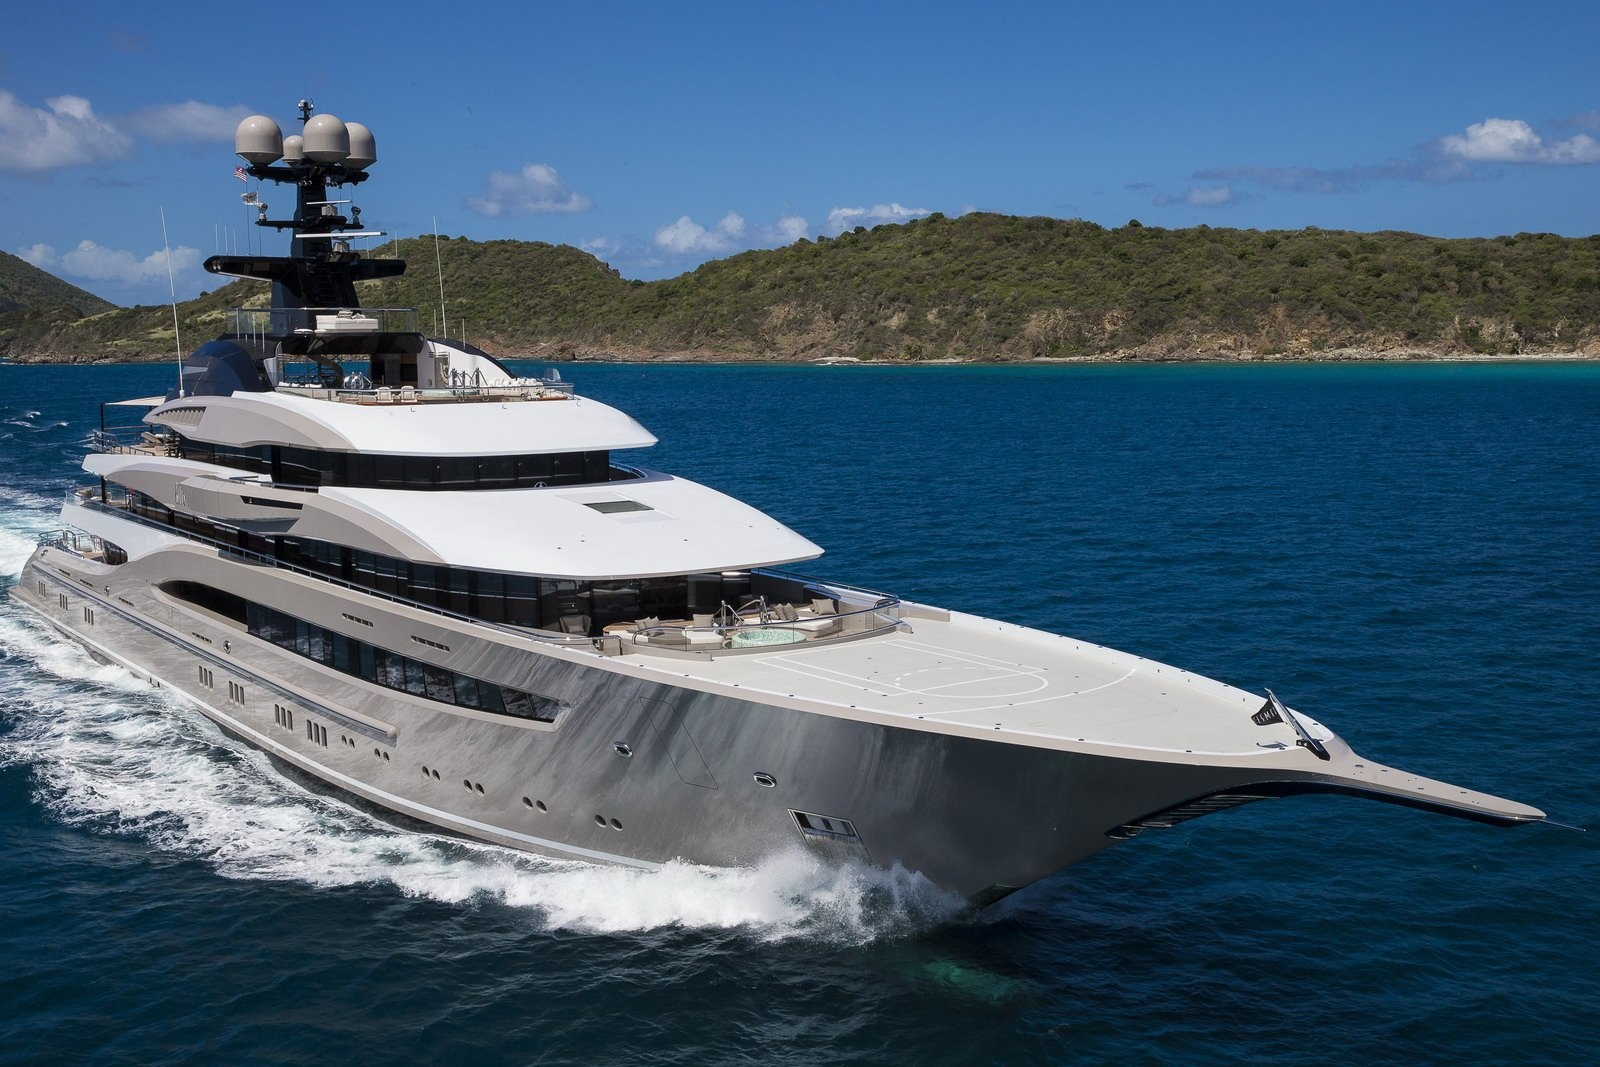 95m Lurssen Mega Yacht In The Caribbean